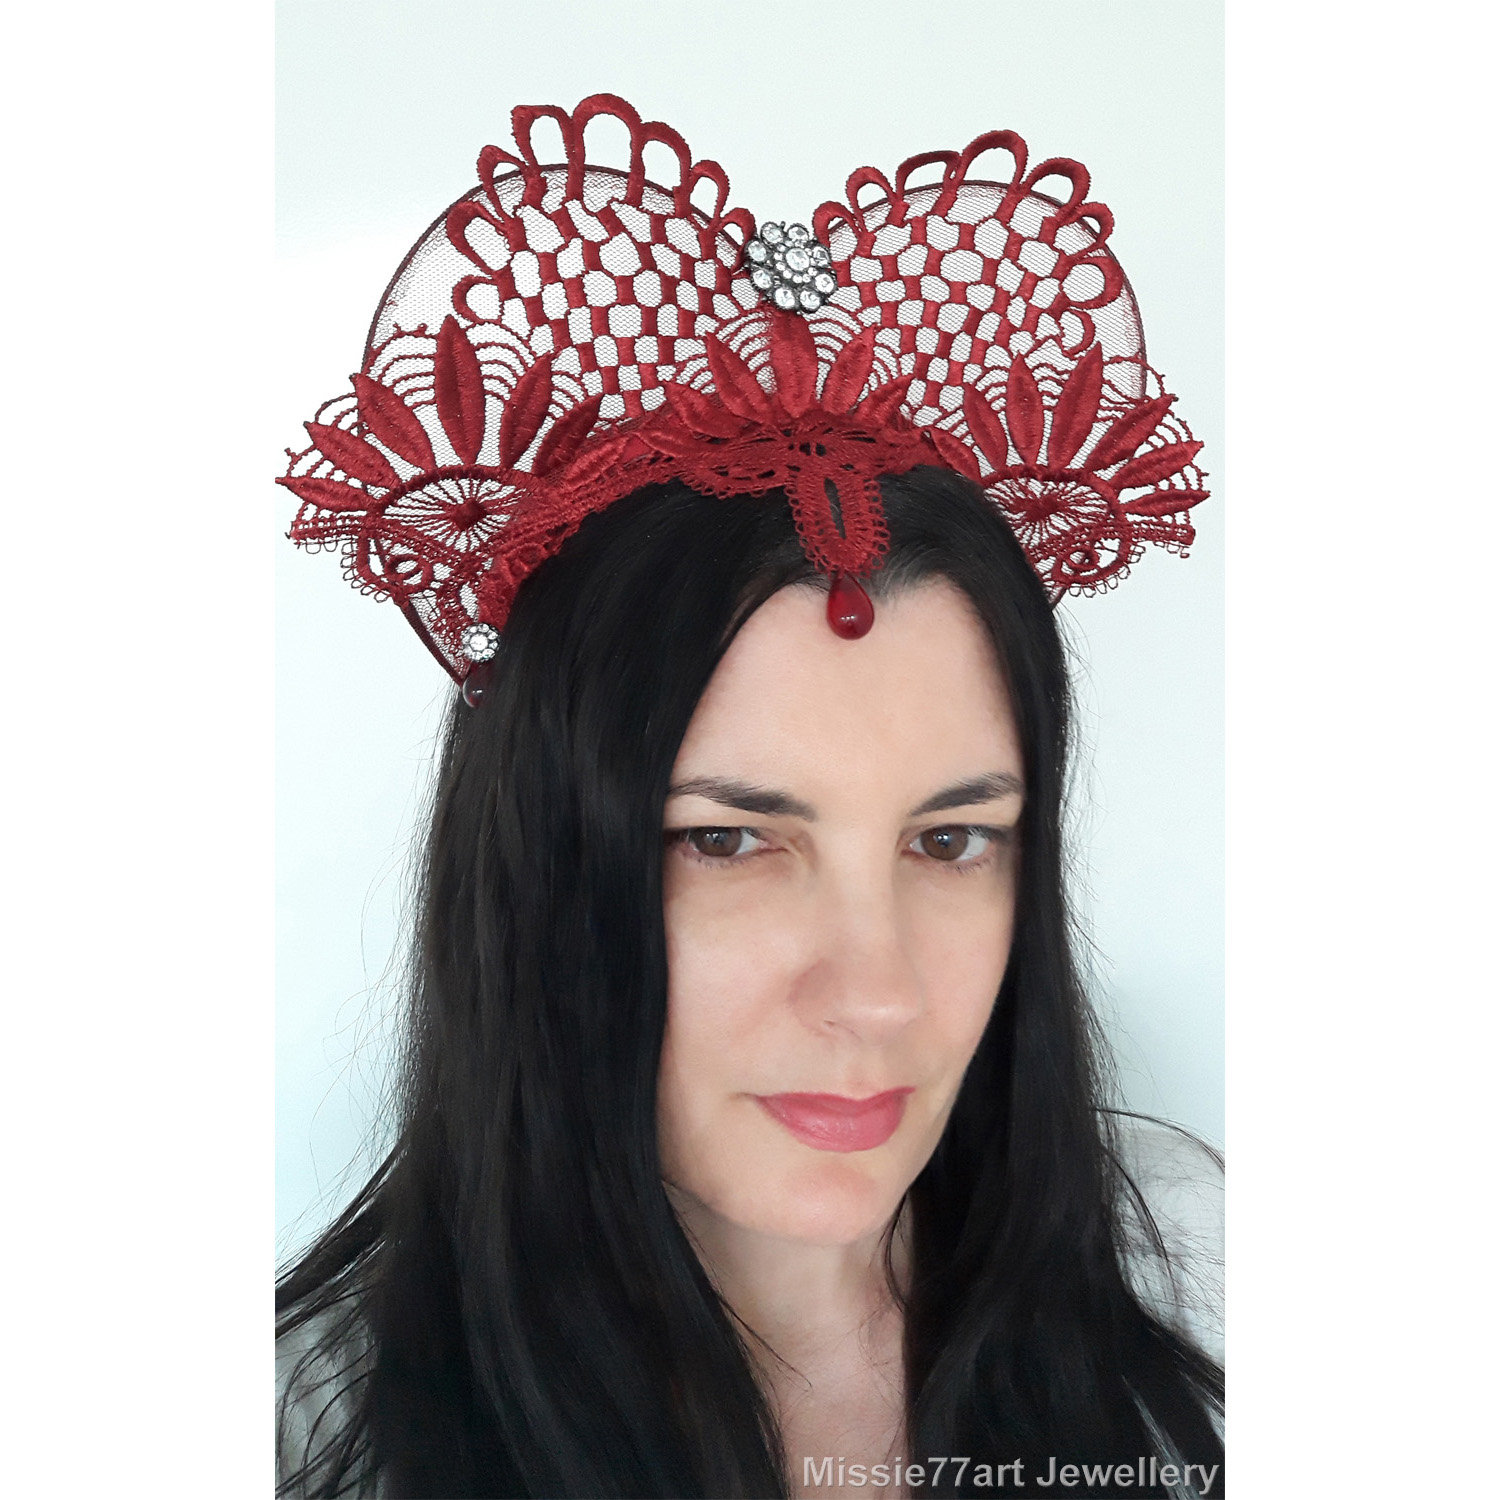 a8803d0db018 Perfect for the races, themed weddings and Burlesque; this burgundy red  headpiece features decorative floral lace ...